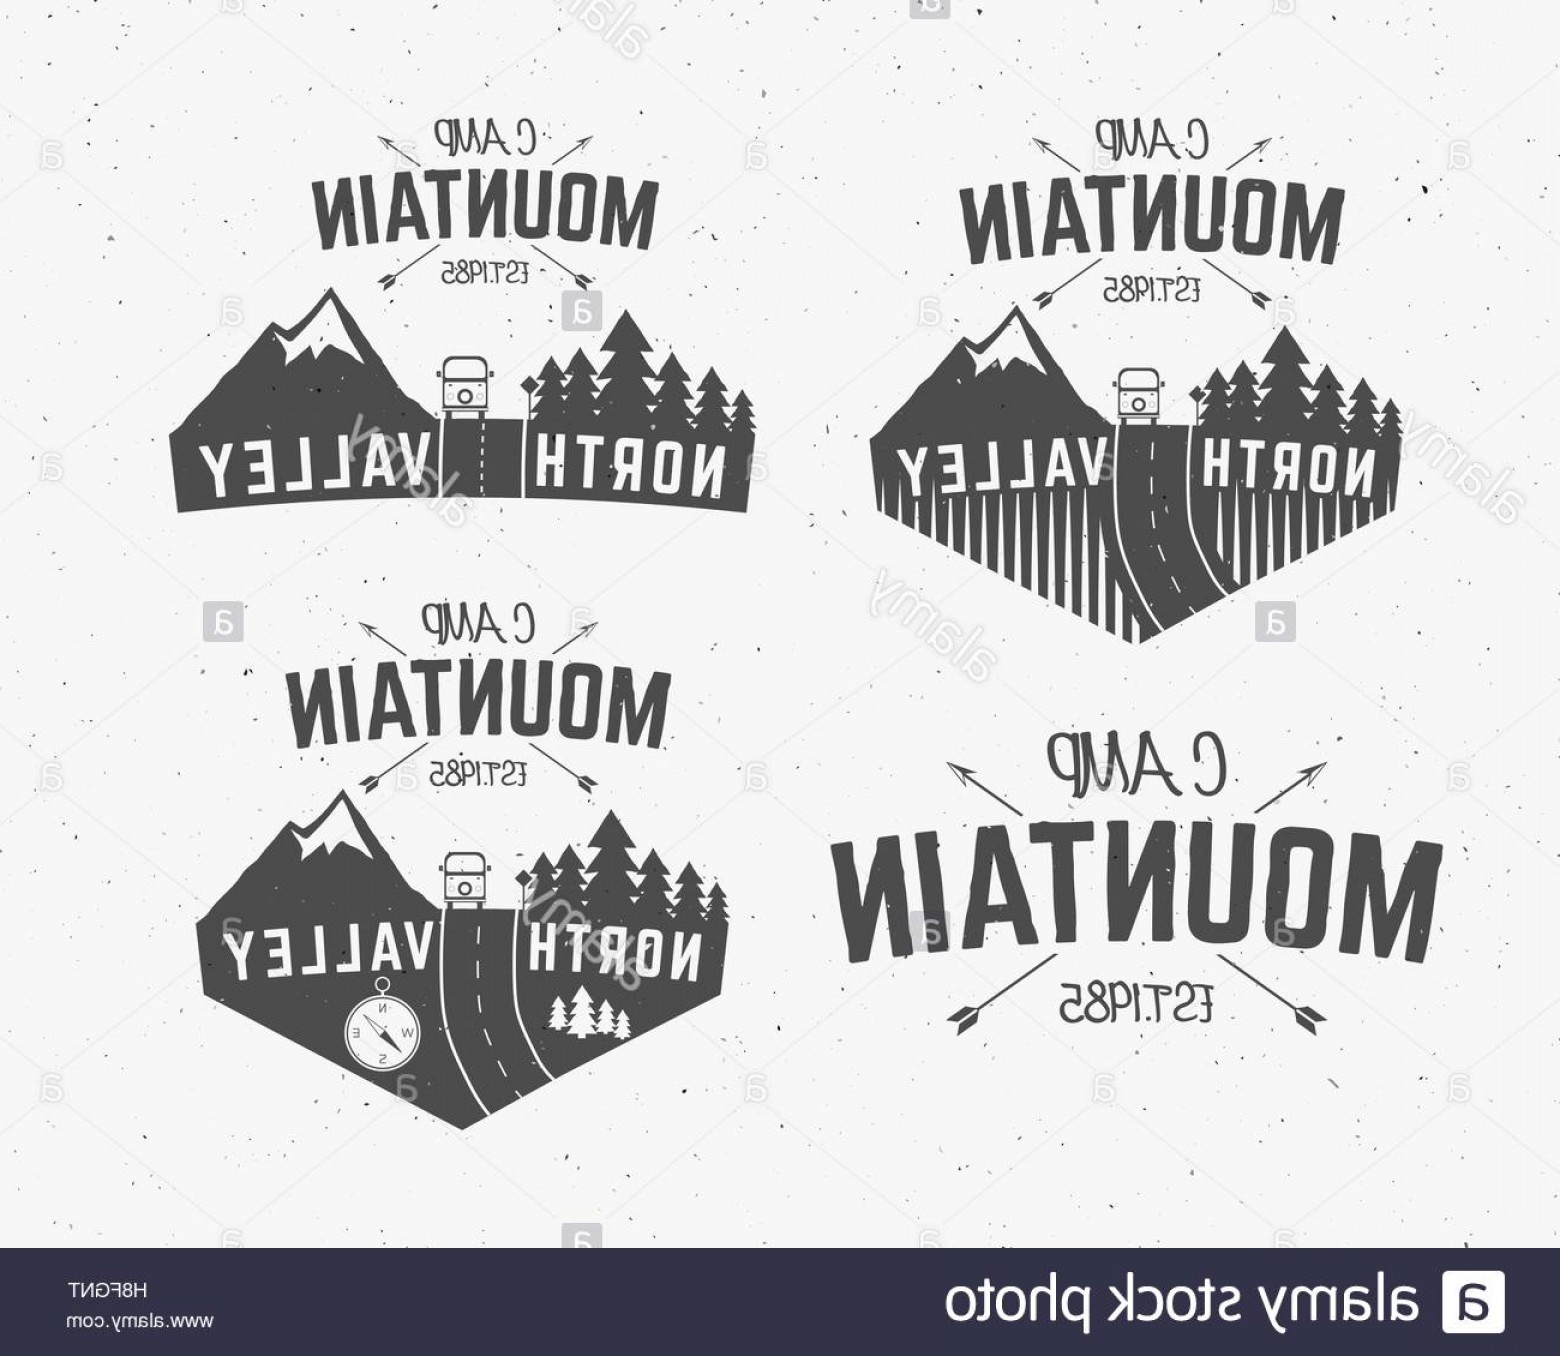 Hipster Logo Vectors Mountain: Stock Photo Set Of Mountain Camp Vintage Explorer Labels Outdoor Adventure Logo